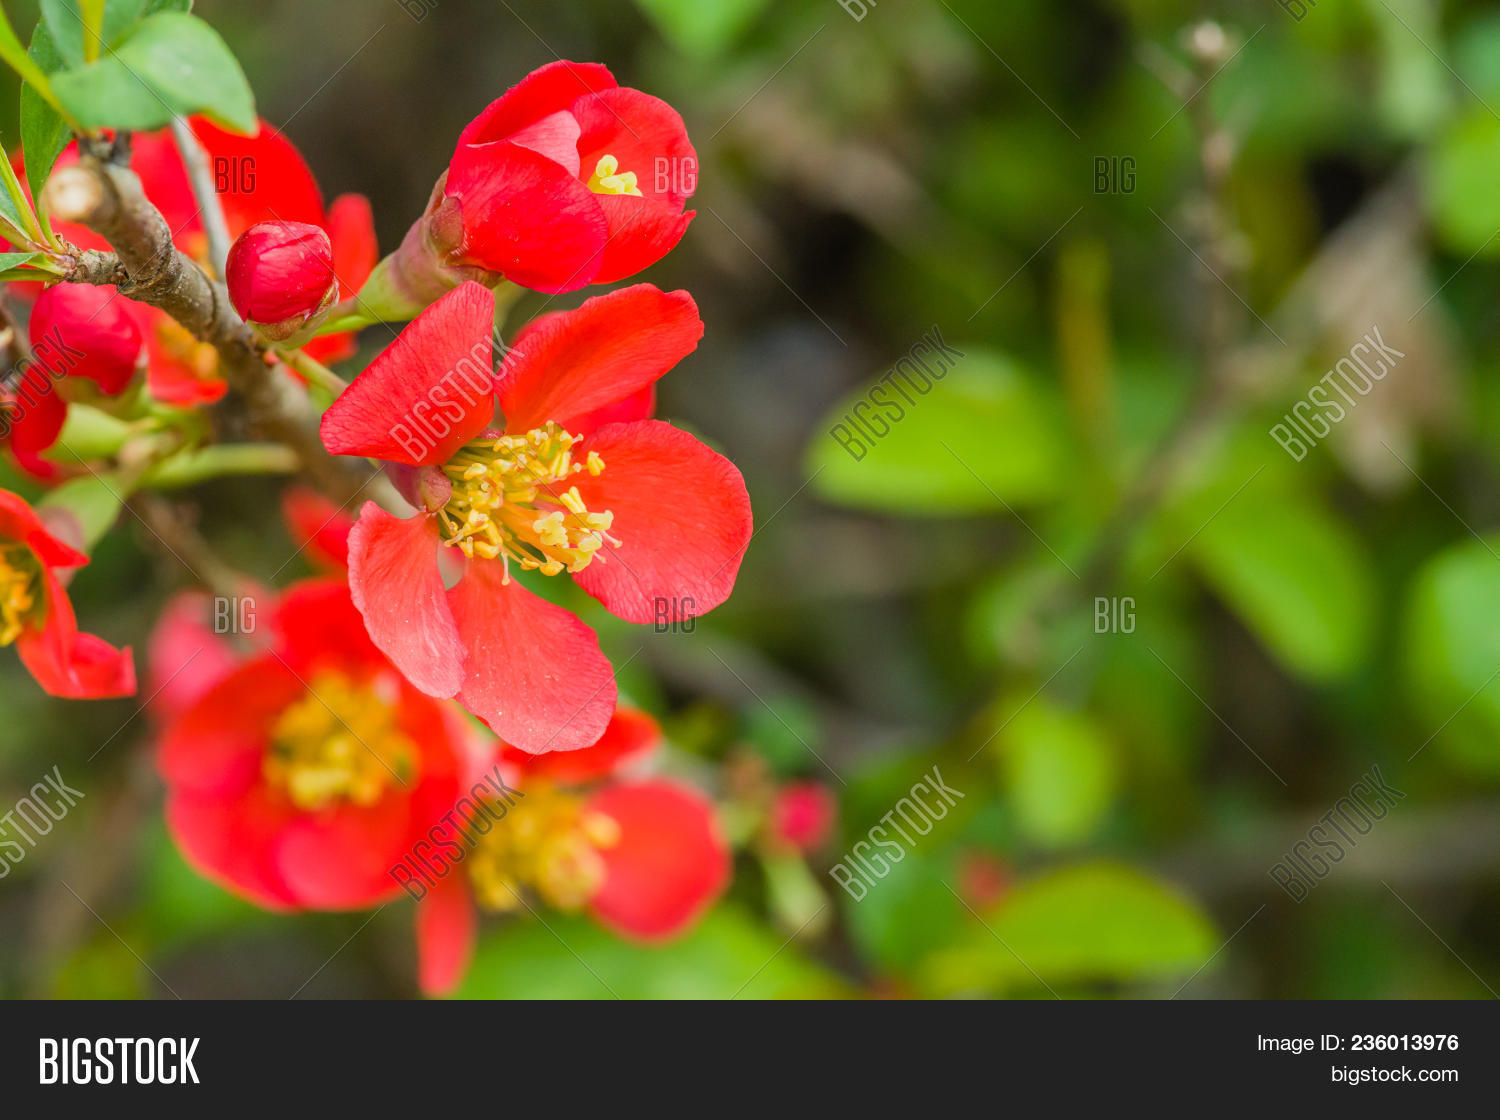 Closeup camellia image photo free trial bigstock closeup of camellia japonica flower small red flower with yellow stamen with natural blurred backgr mightylinksfo